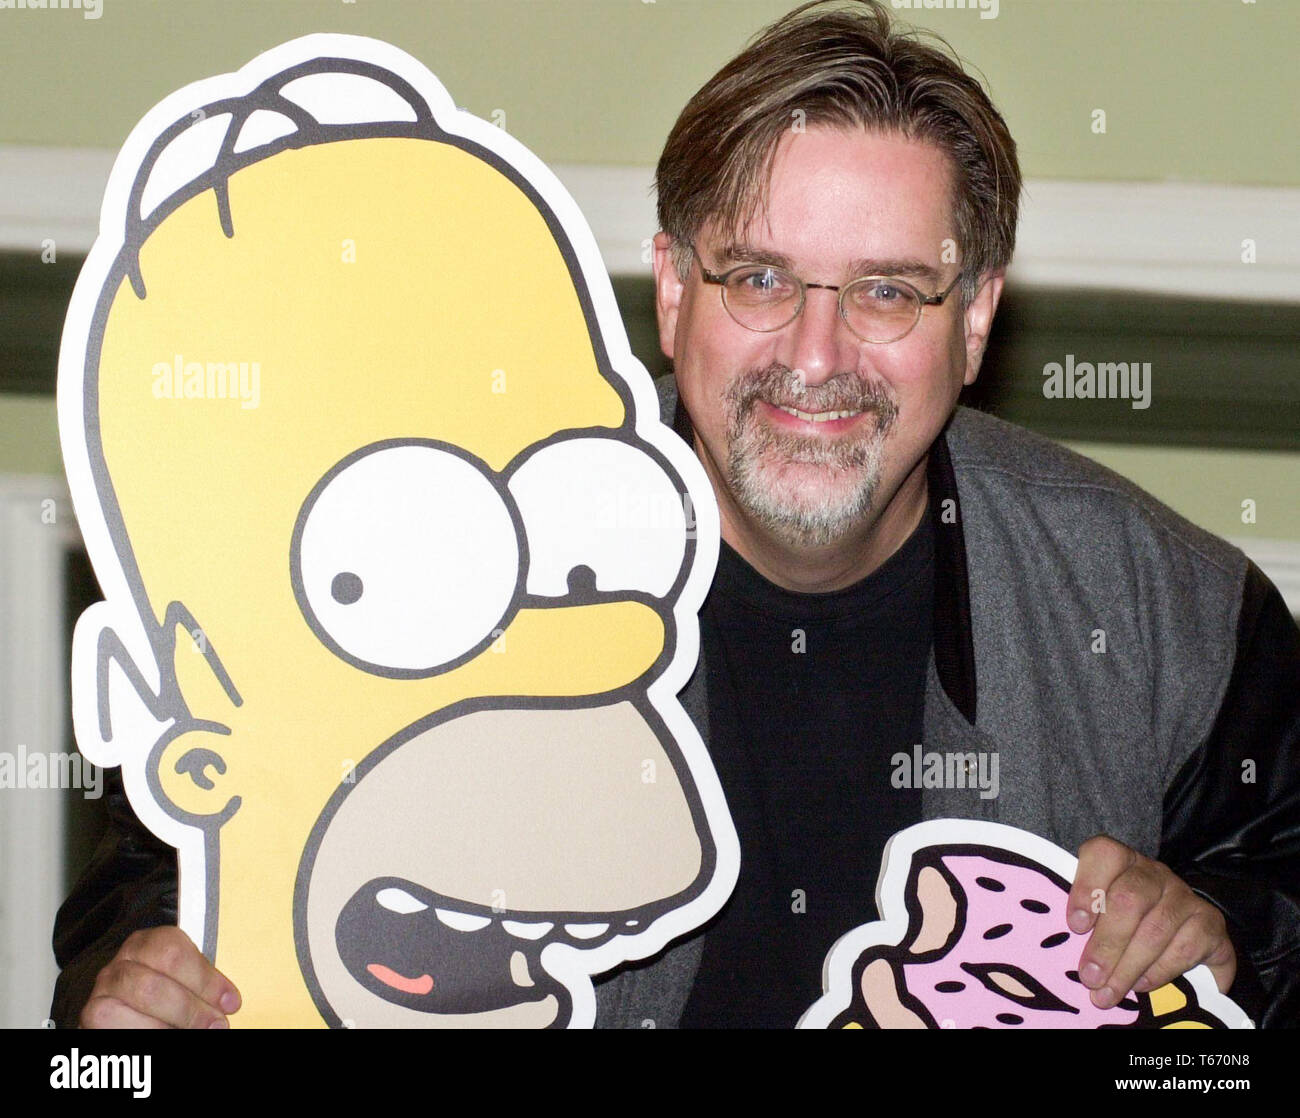 Celebrating ten years of The Simpsons on Sky One, The Simpsons Mania Tour started at The Assembley Rooms in Edinburgh tonight, Monday 14/8/00.  The voices behind the characters performed a rare live read of one of the scripts aided by the series creator Matt Groening. Matt is pictured with his character Homer. - Stock Image